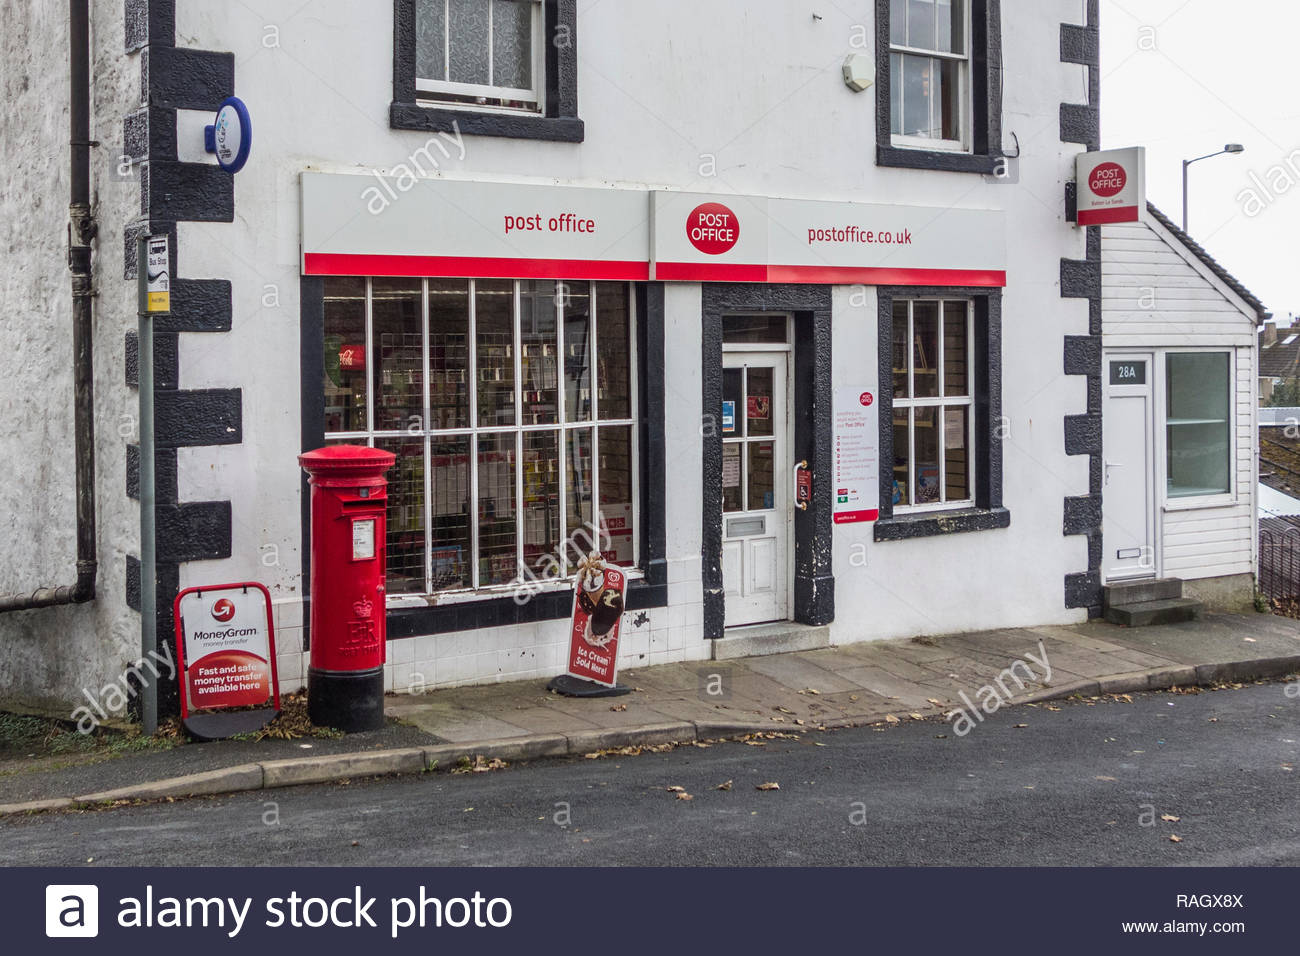 The Post Office in Bolton le Sands, Lancashire, England, UK - Stock Image